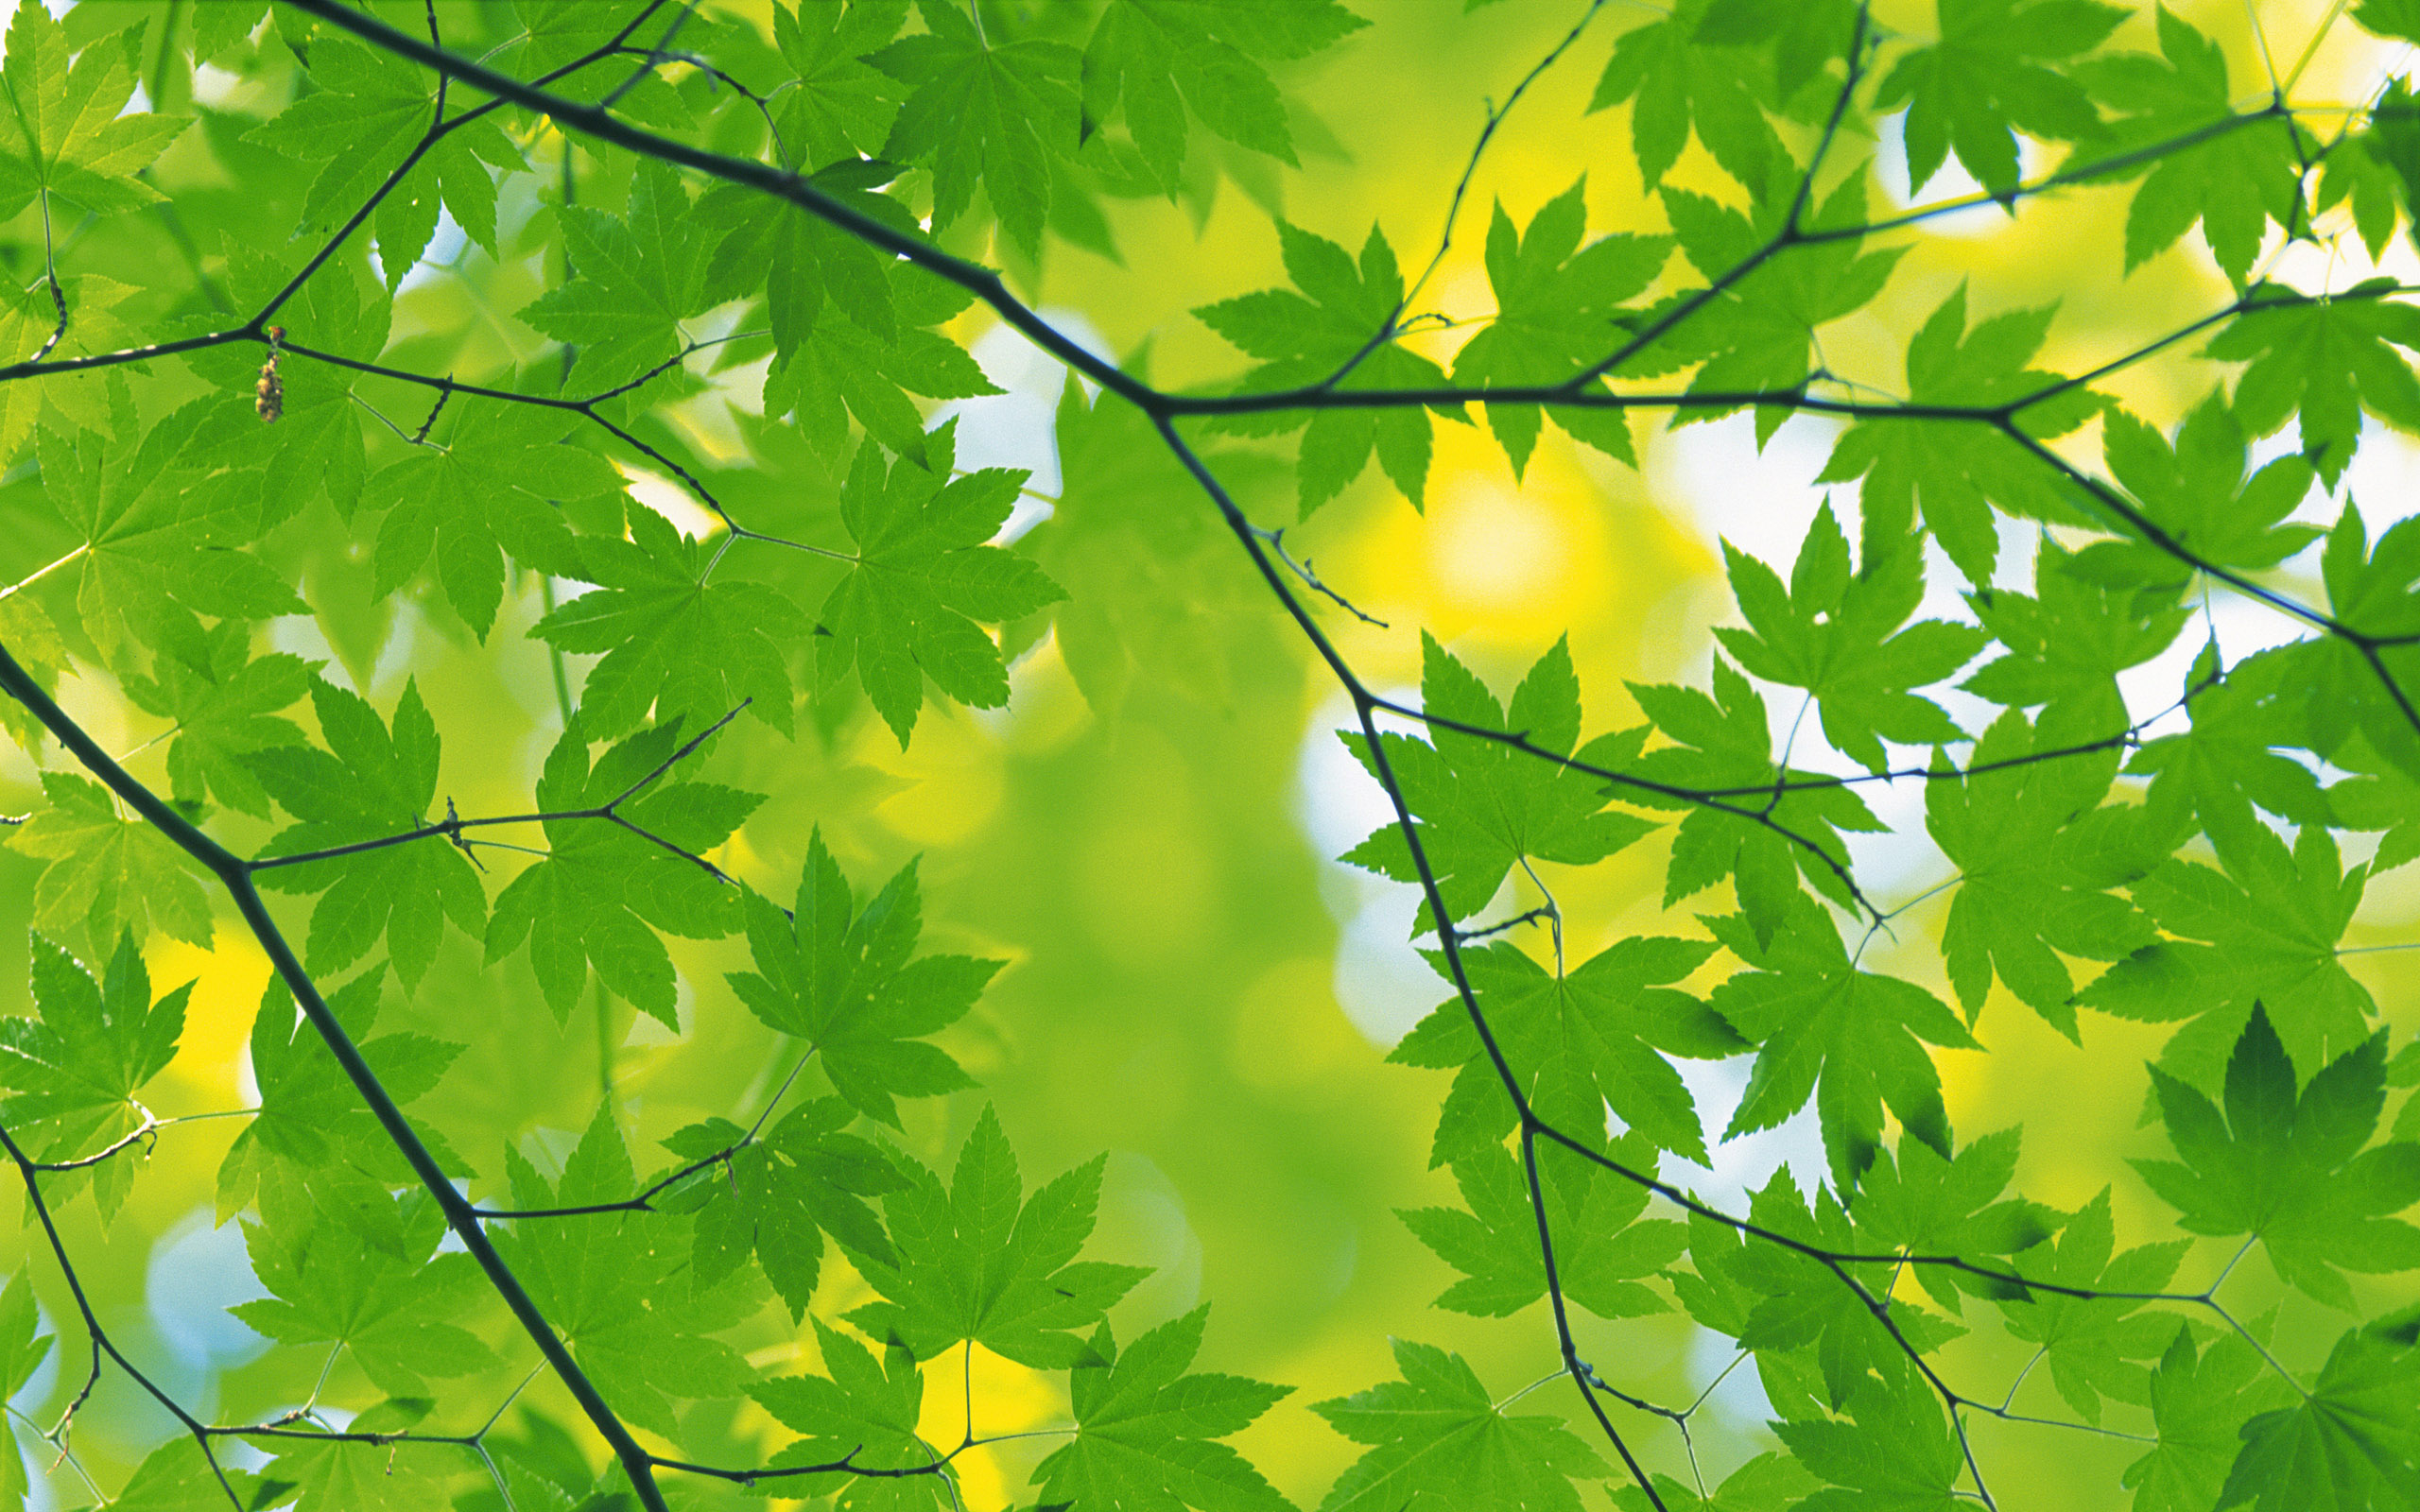 Green Foliage Wallpaper